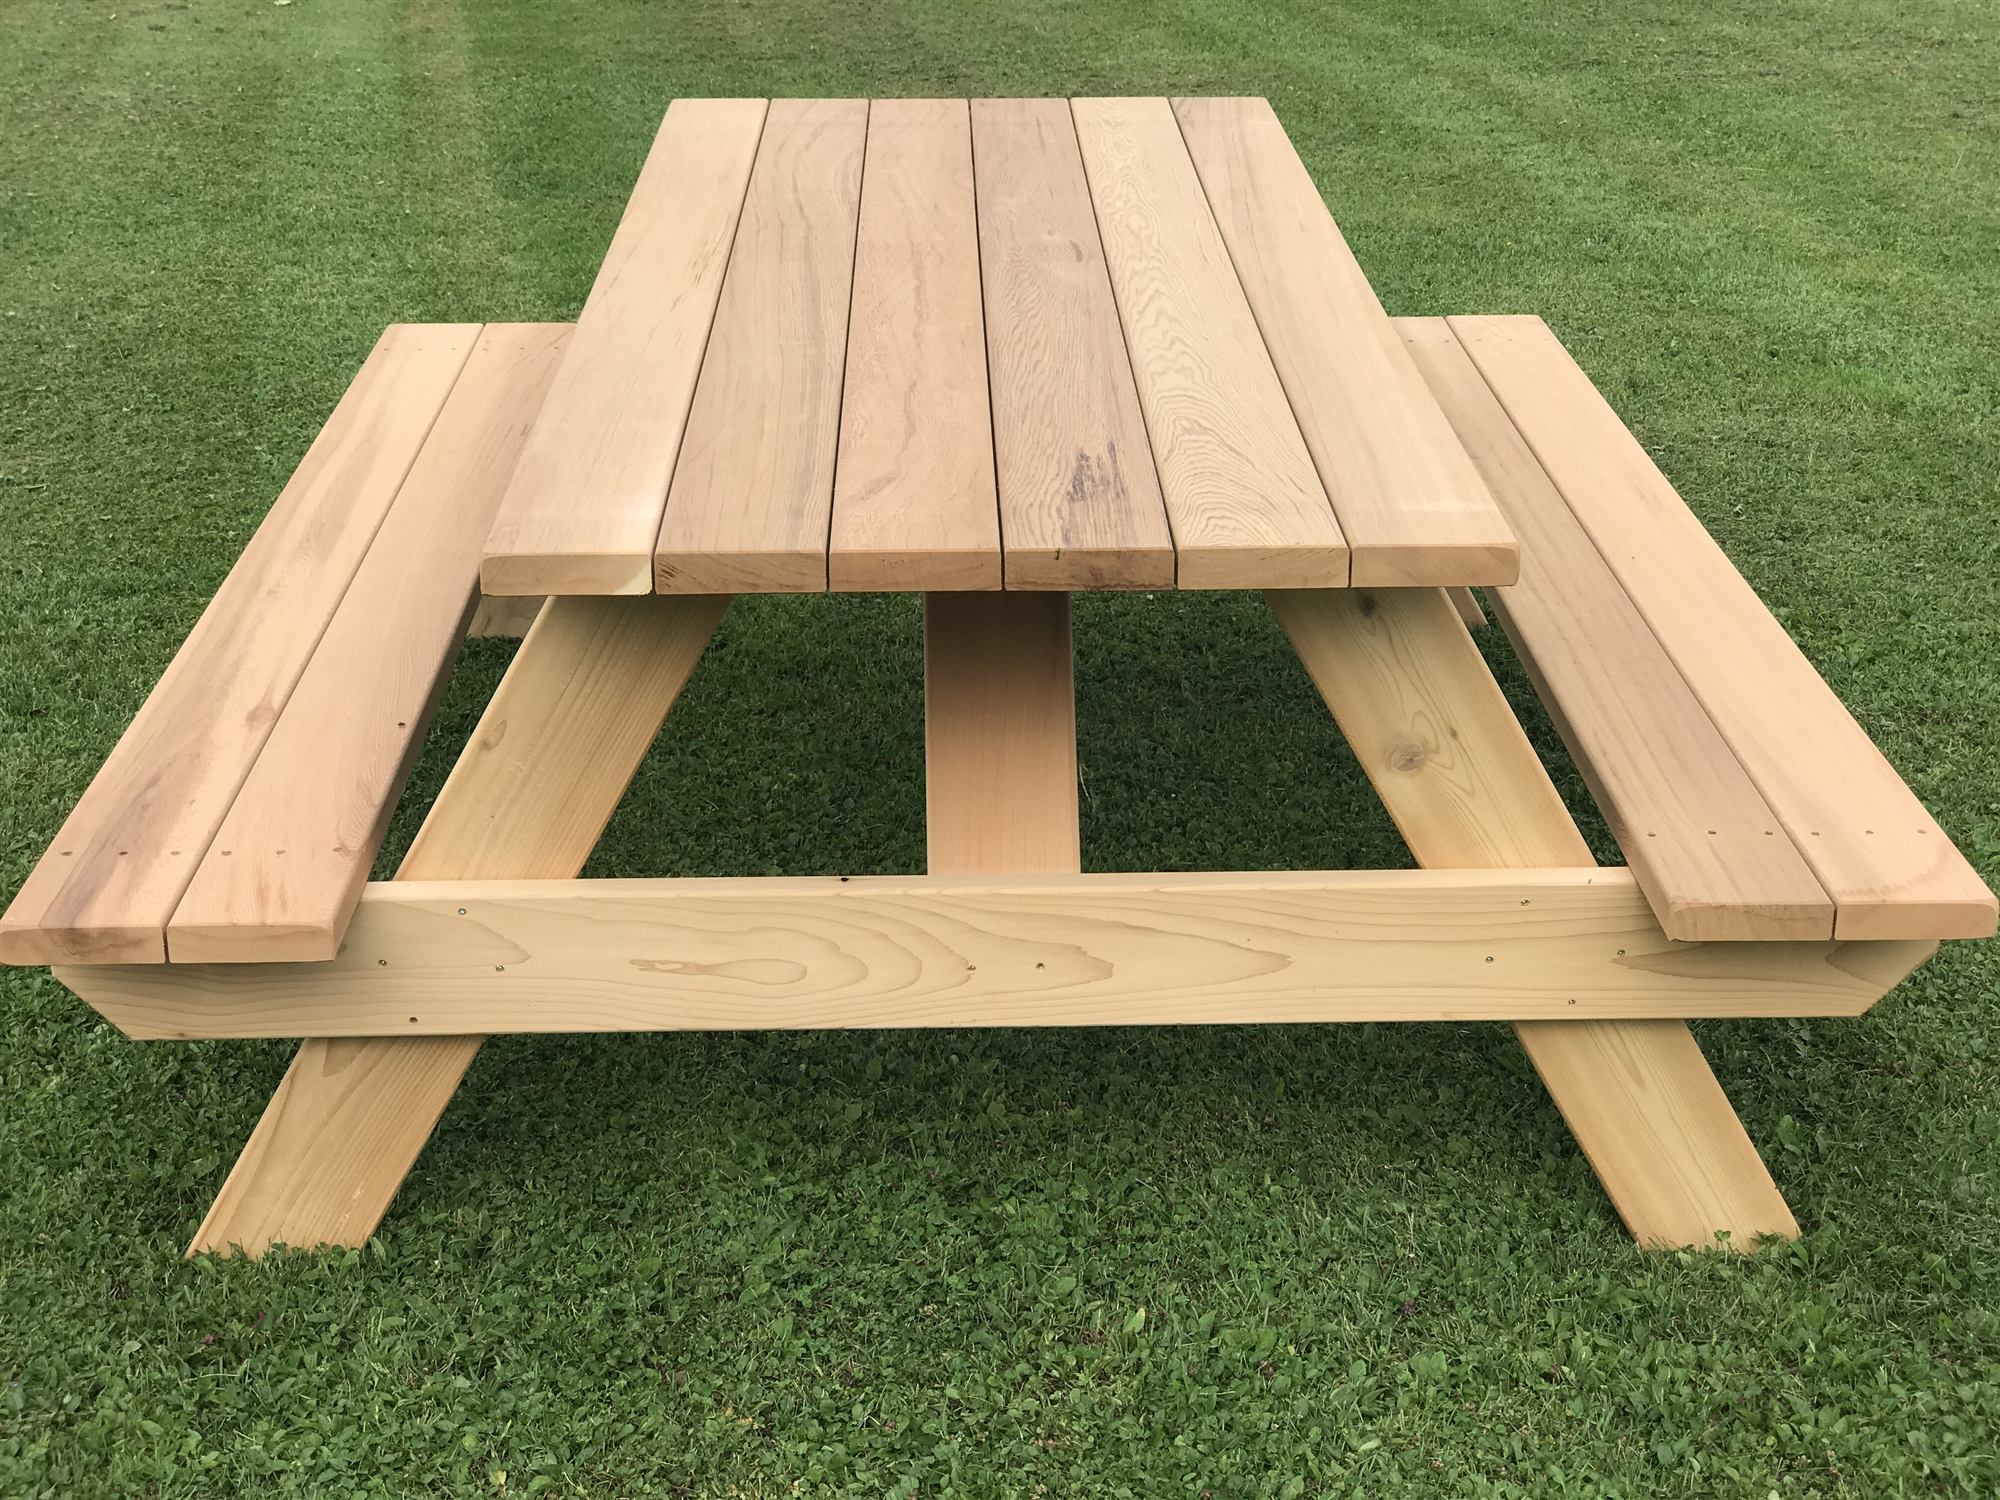 7 Heavy Duty Wooden Picnic Table For Homes Amp Businesses